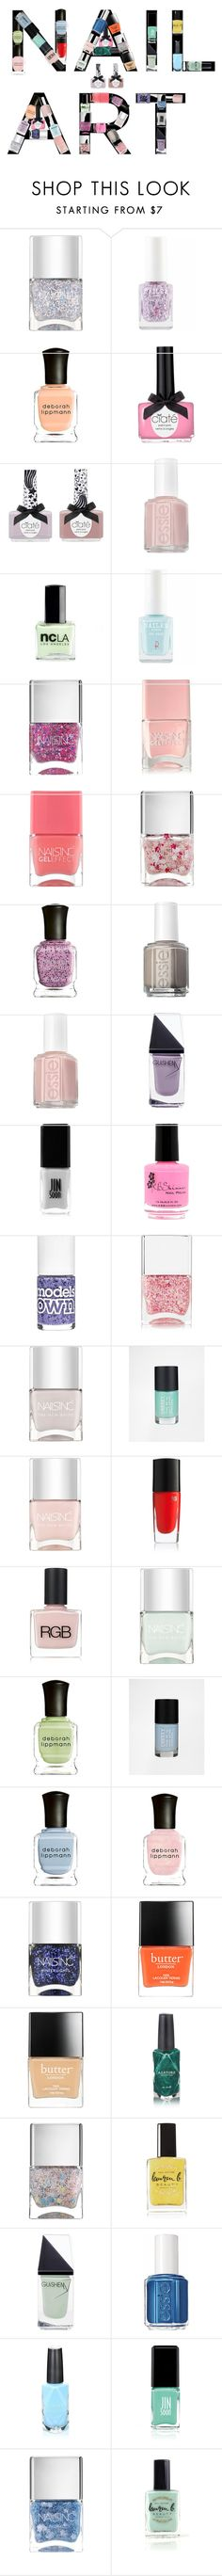 """Pastel Nail Polishes"" by cypressredwood ❤ liked on Polyvore featuring beauty, Nails Inc., Deborah Lippmann, Ciaté, Essie, ncLA, GUiSHEM, Jin Soon, Models Own and Cheeky"